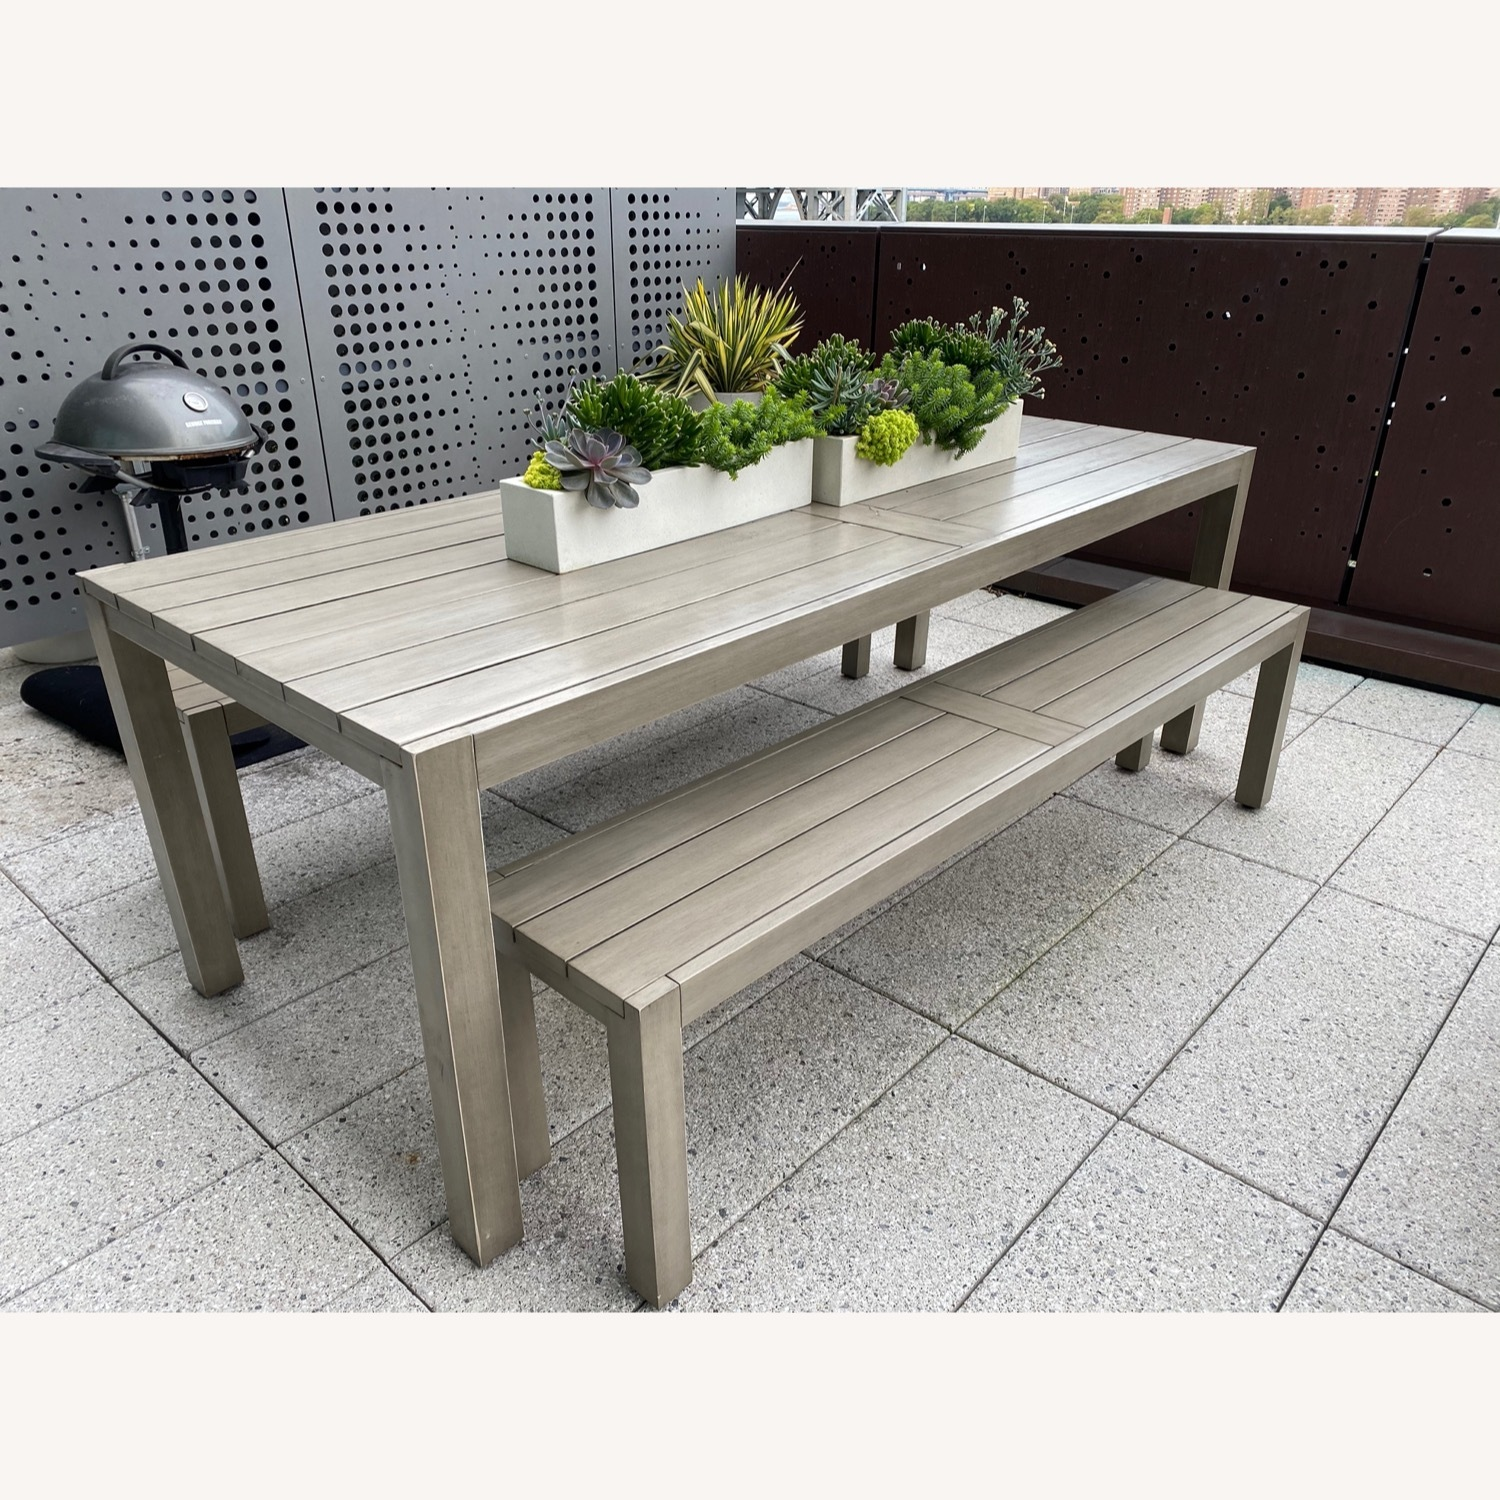 CB2 Matera Outdoor Dining Table w/ benches - image-0